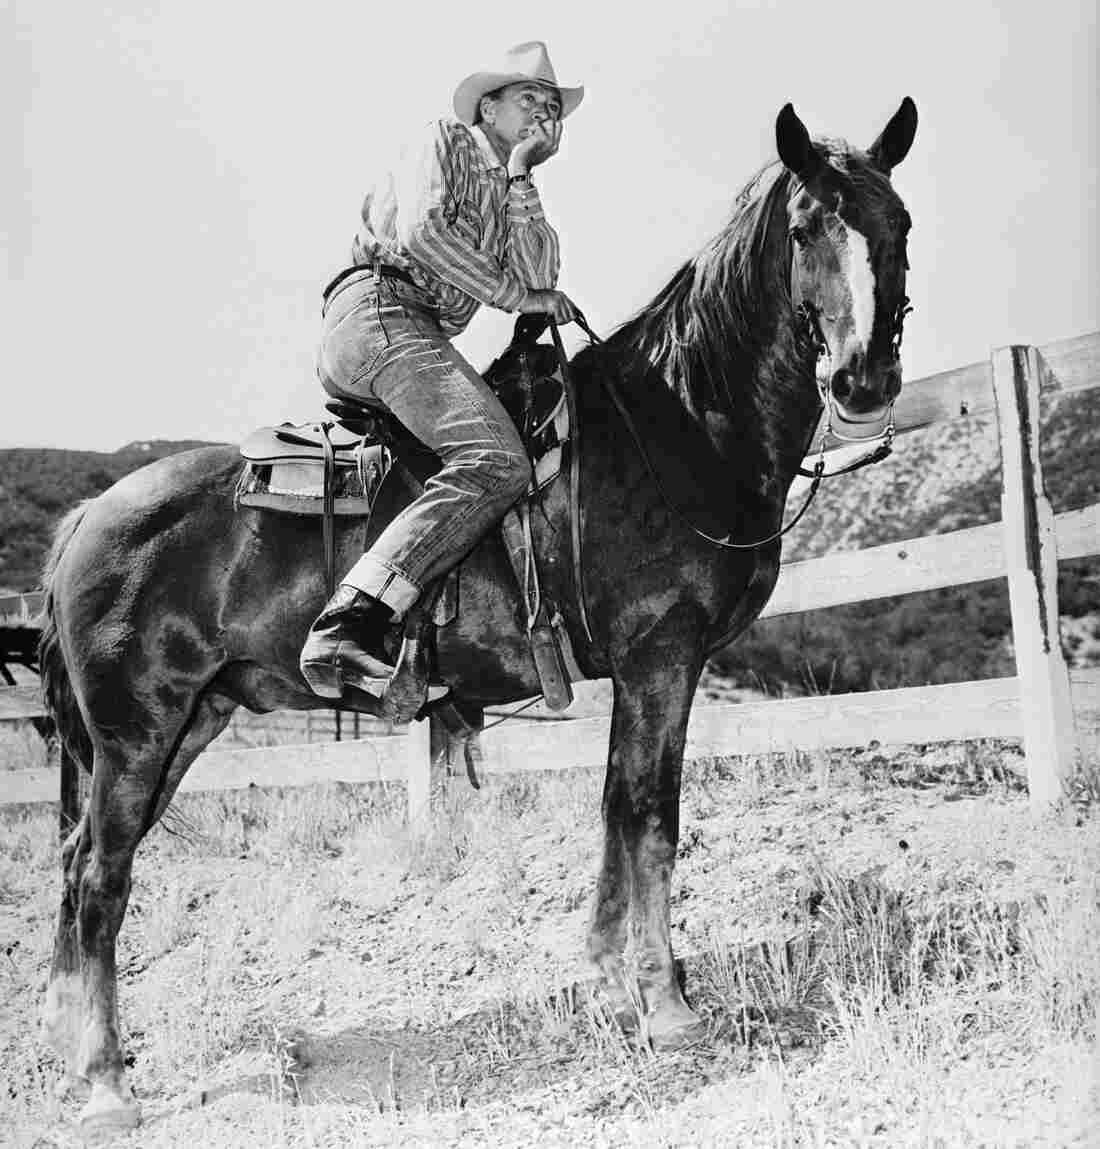 Gary Cooper, in the saddle